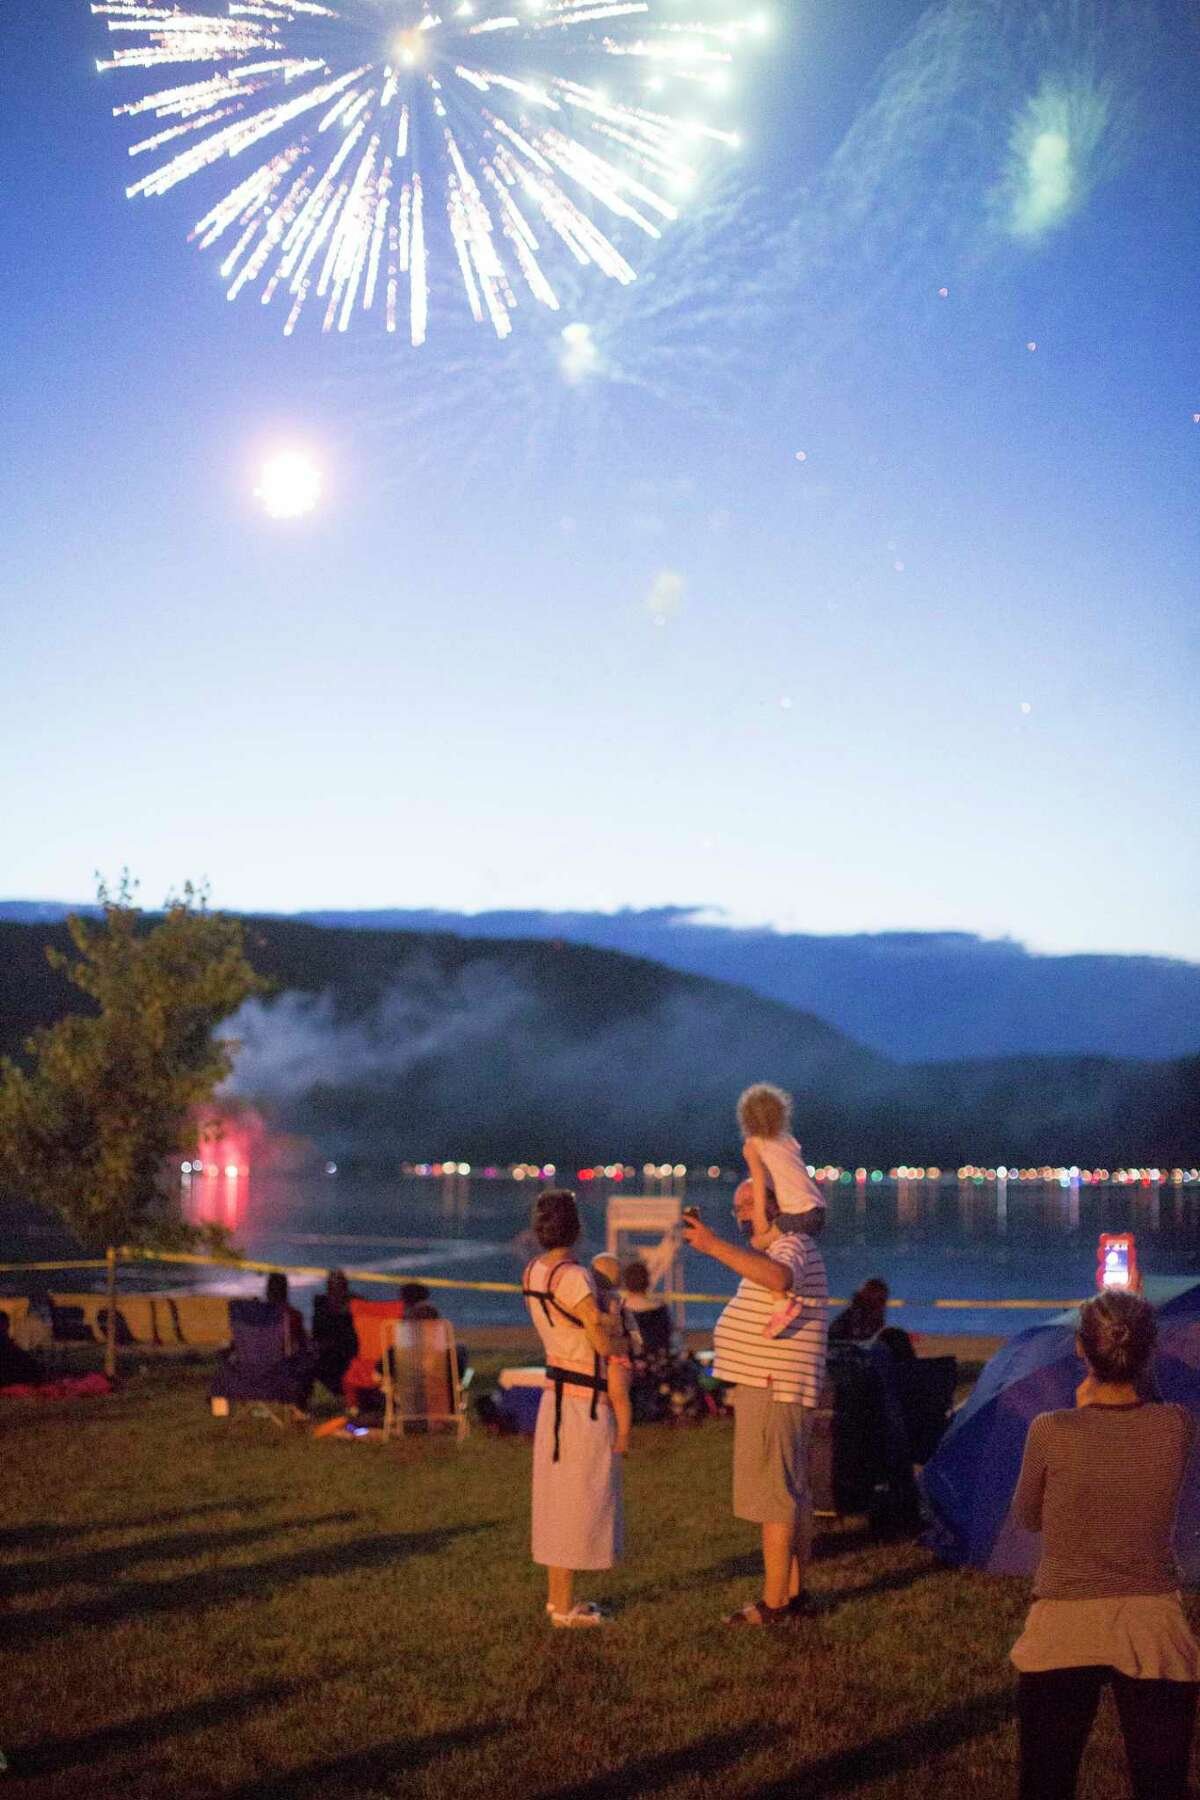 Fireworks explode behind Anton Belousov, who works in Danbury at Wells Fargo, his wife, Olga Volodiaeva, and children Eva and Mia Belousov at the Danbury Town Park where fireworks were launched at Candlewood Lake the night of Saturday, June 24.